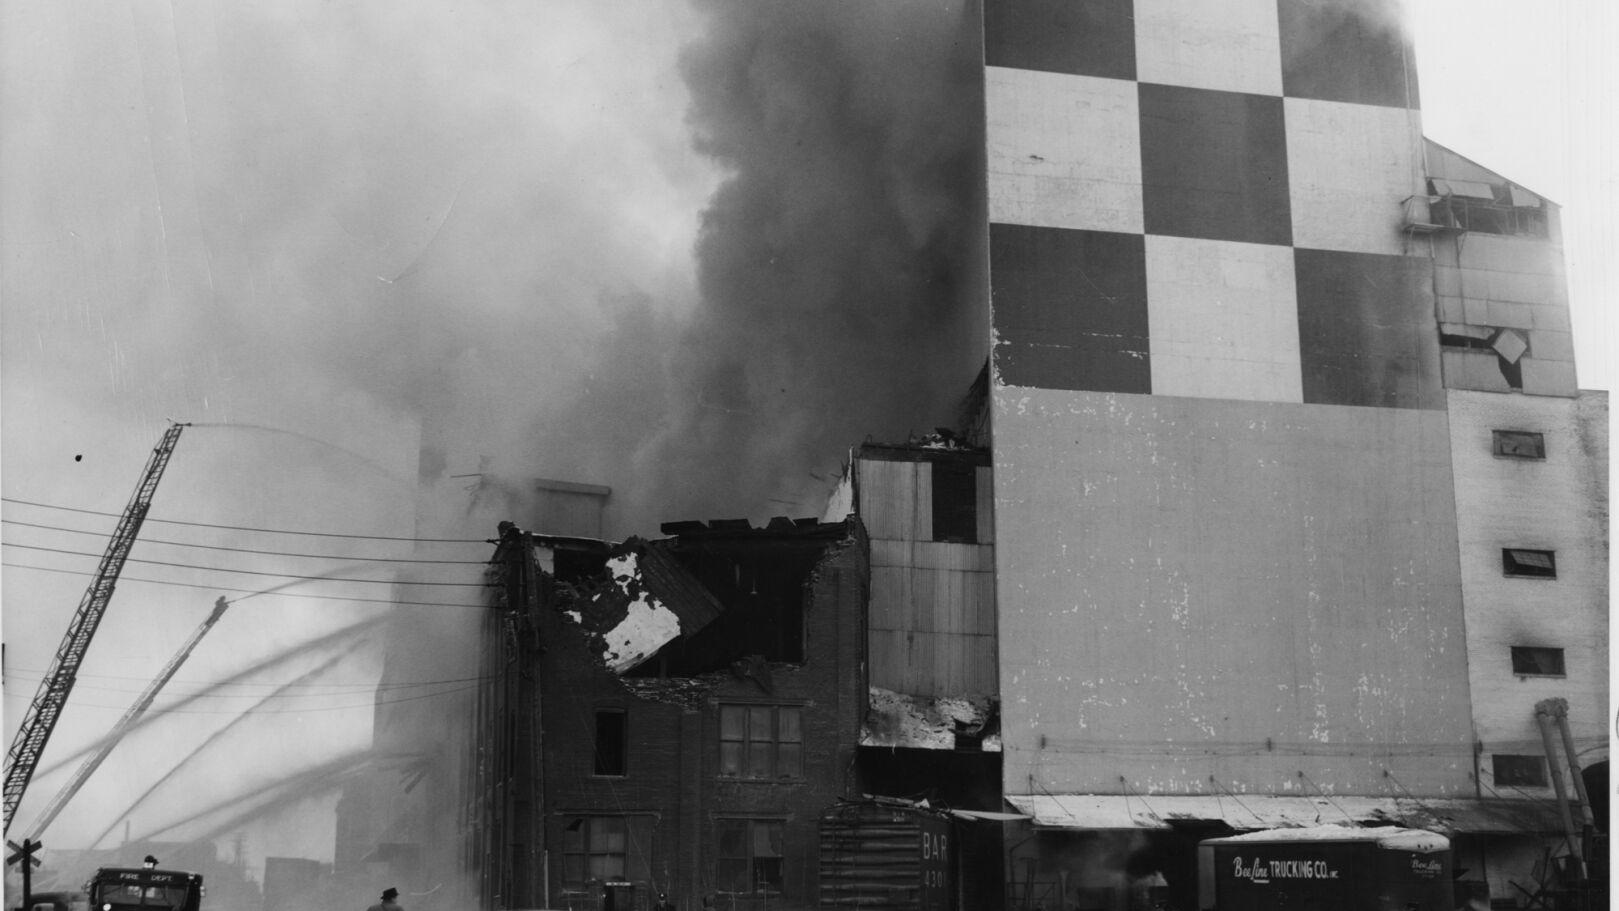 A look back • An  explosion in bitter cold headlined a tragic day for St. Louis fire department